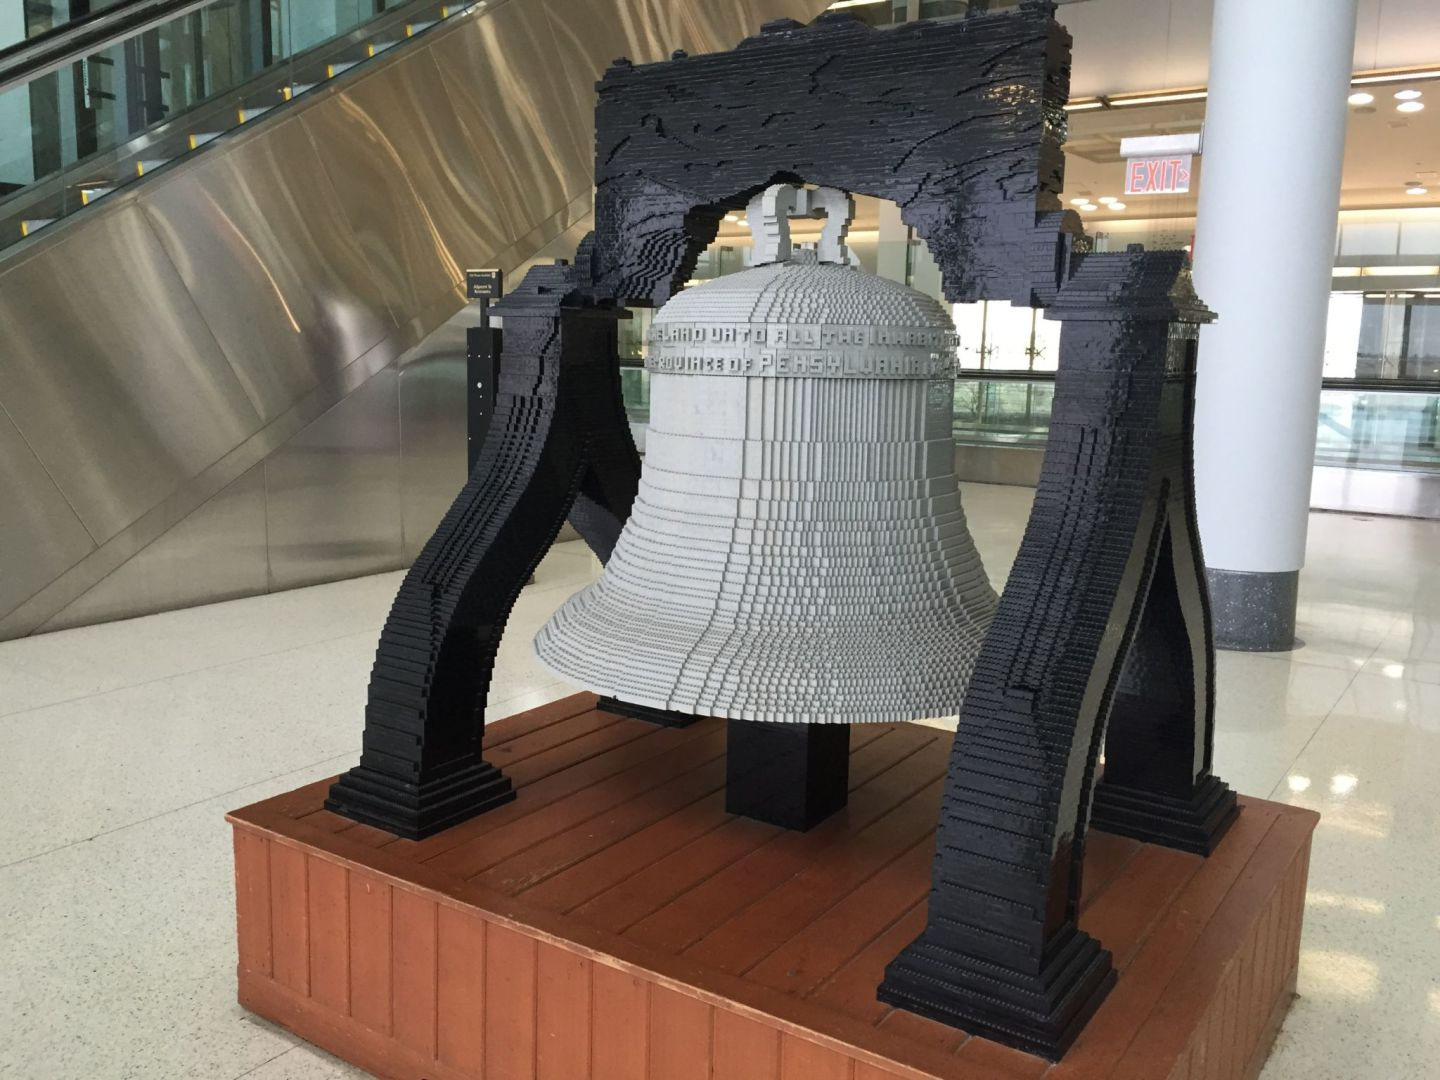 Yes, that is a Liberty Bell made out of Lego. Pic at Philadelphia airport by @jabberingjourno